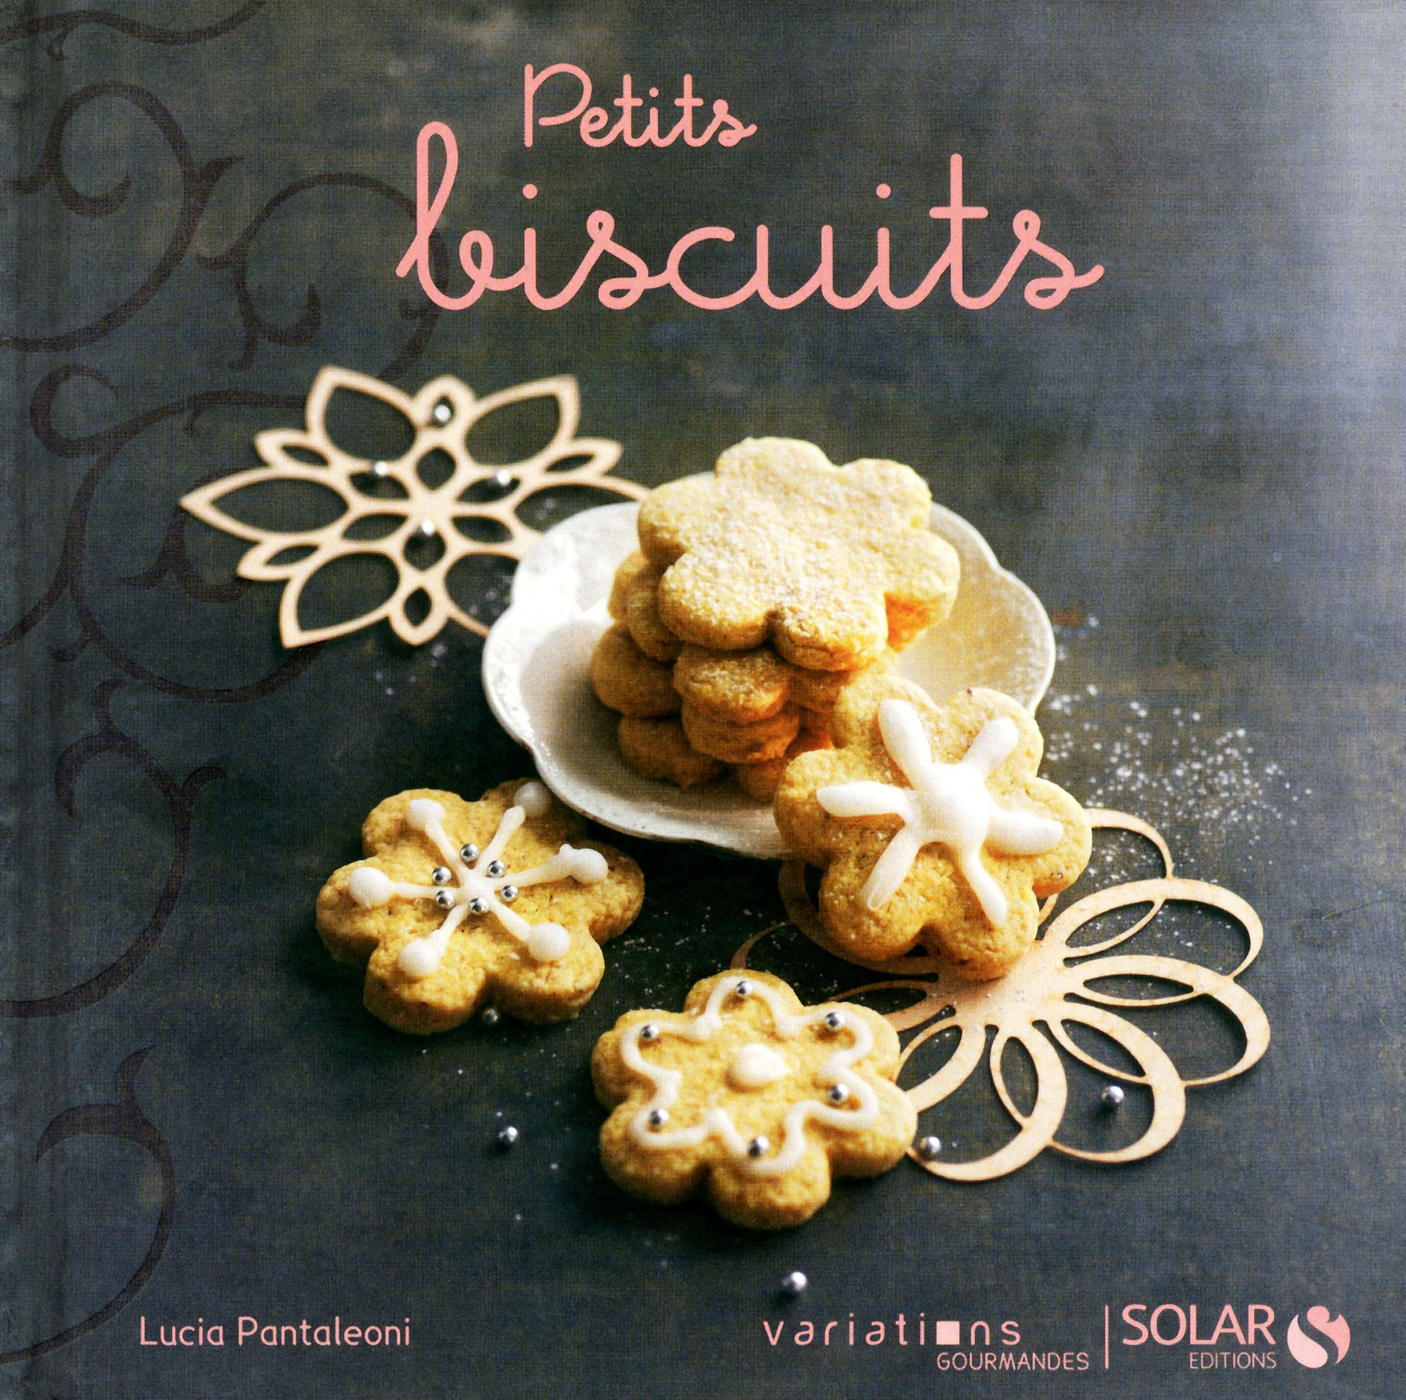 Petits biscuits - Variations Gourmandes (ebook)